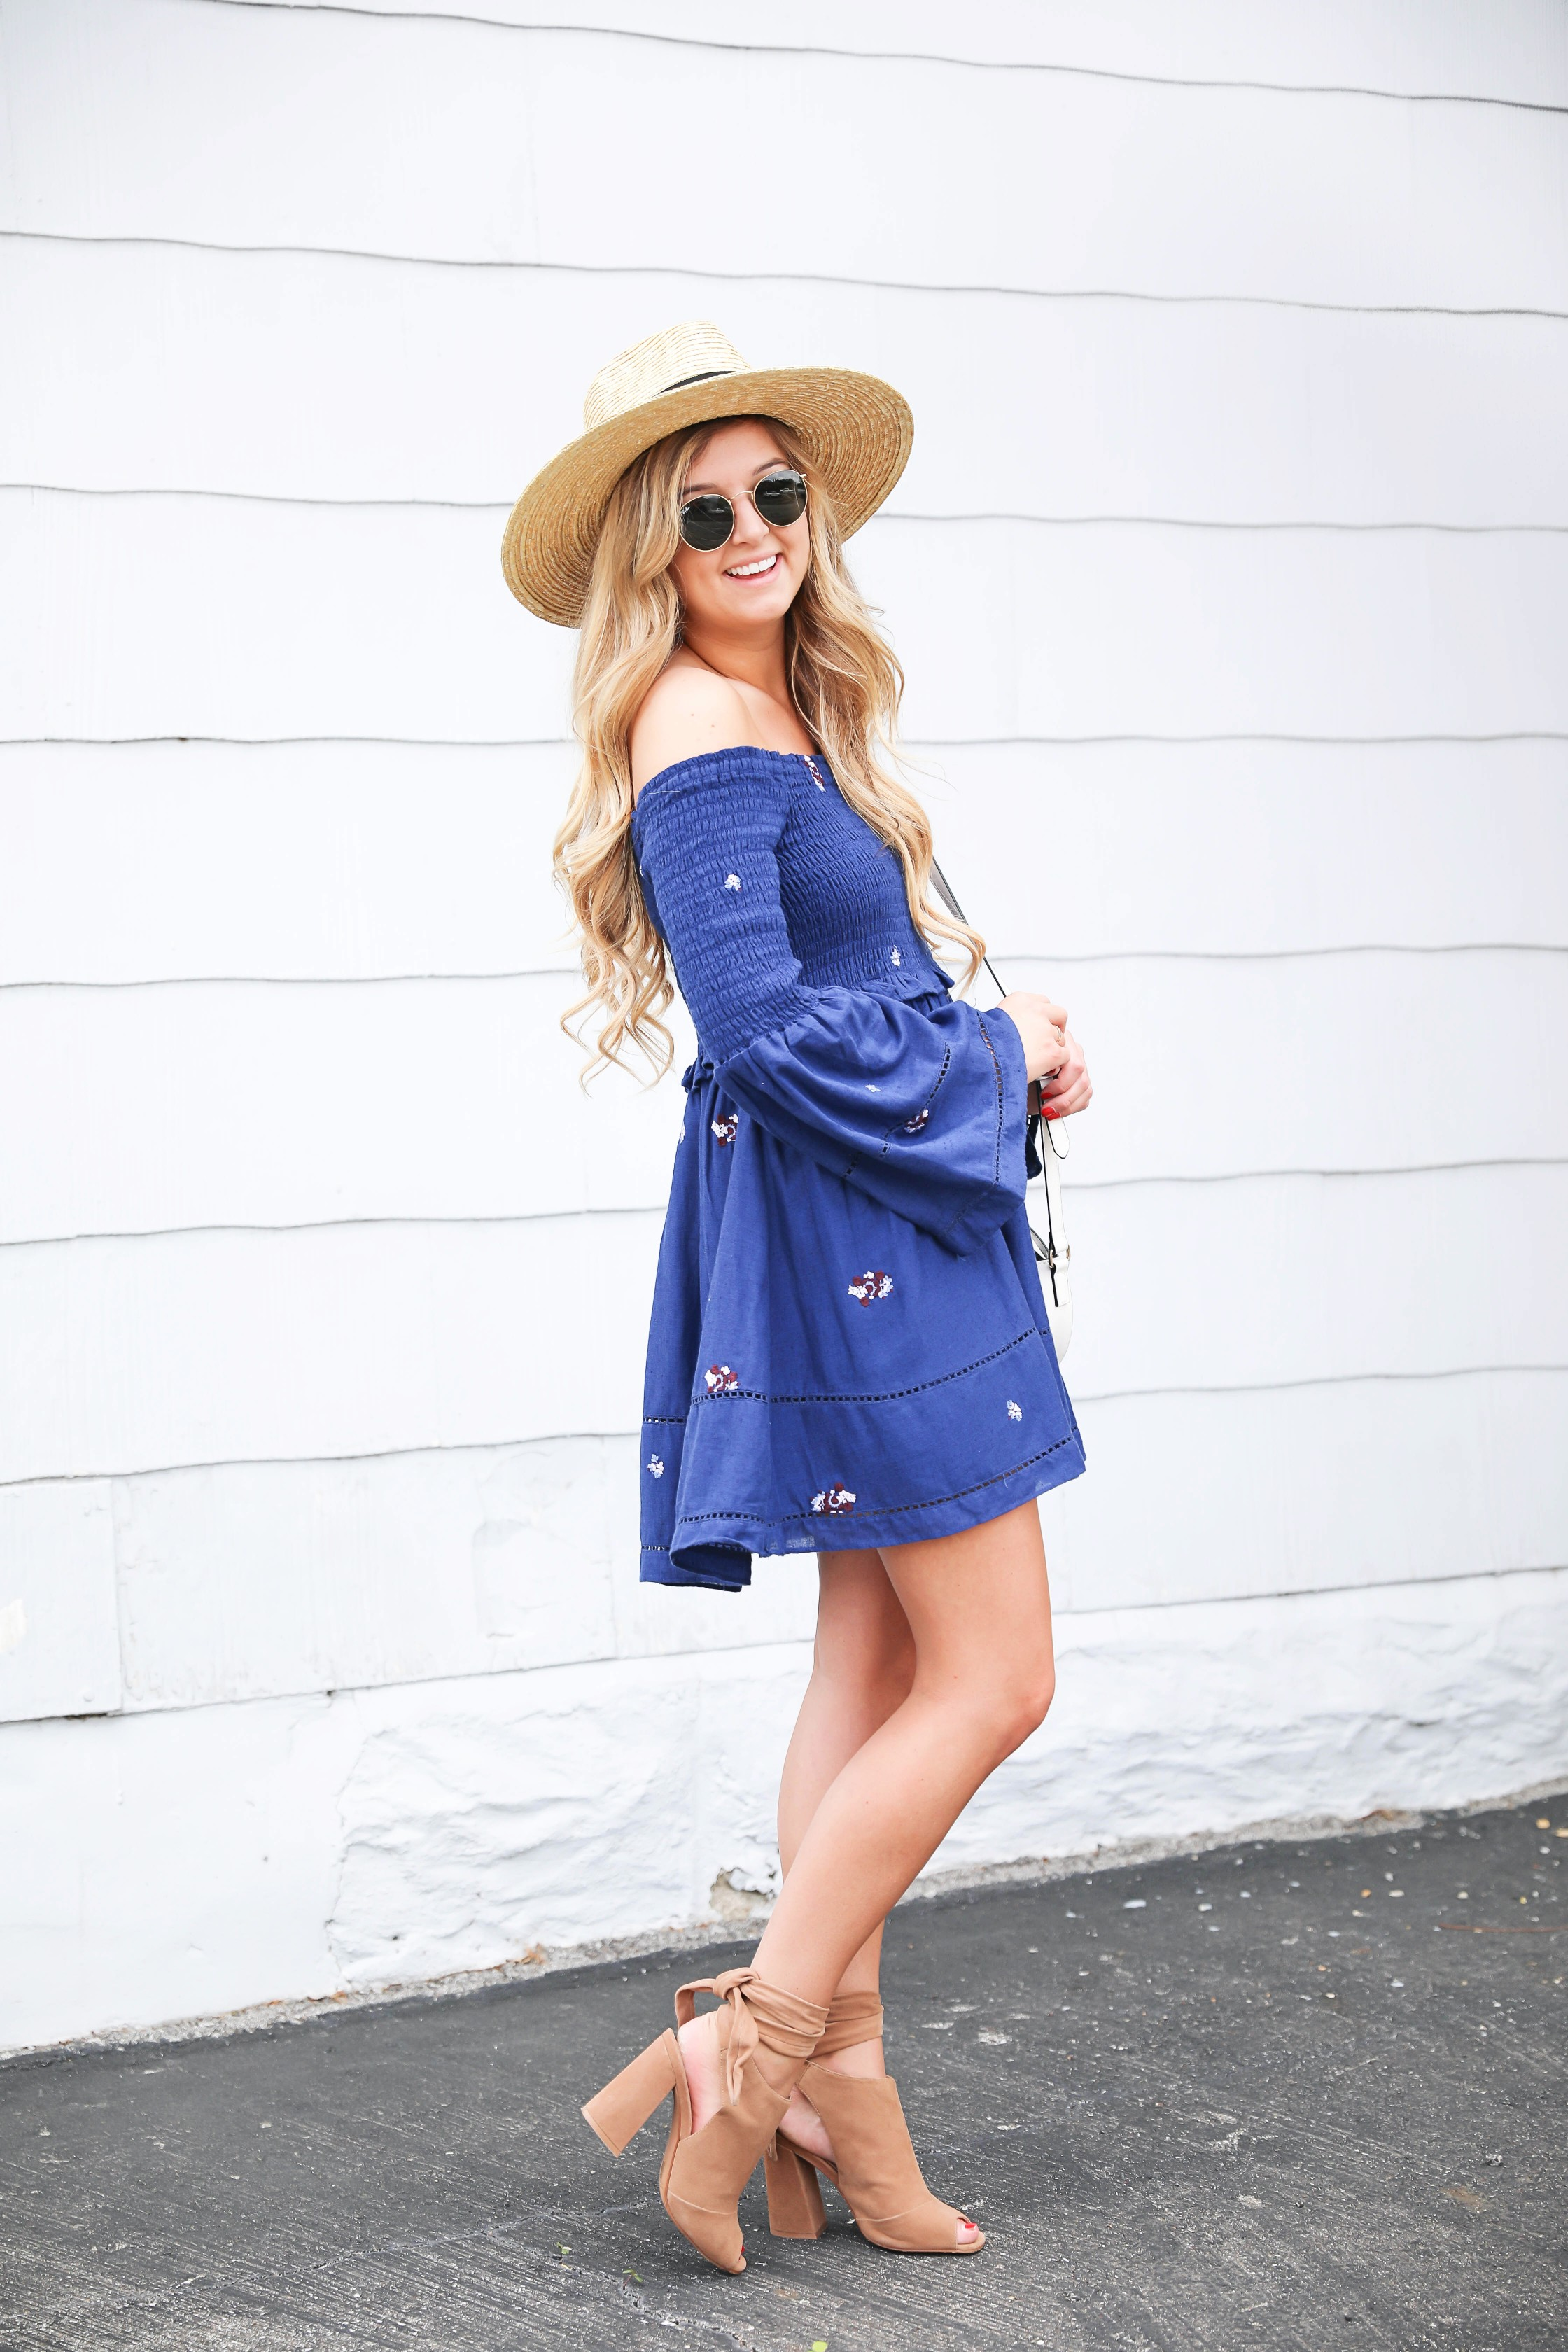 Navy free people off the shoulder embroidered dress! Love this summer fashion look! This summer dress will be perfect for days on the town or nights out! Details on fashion blog daily dose of charm by fashion blogger lauren lindmark